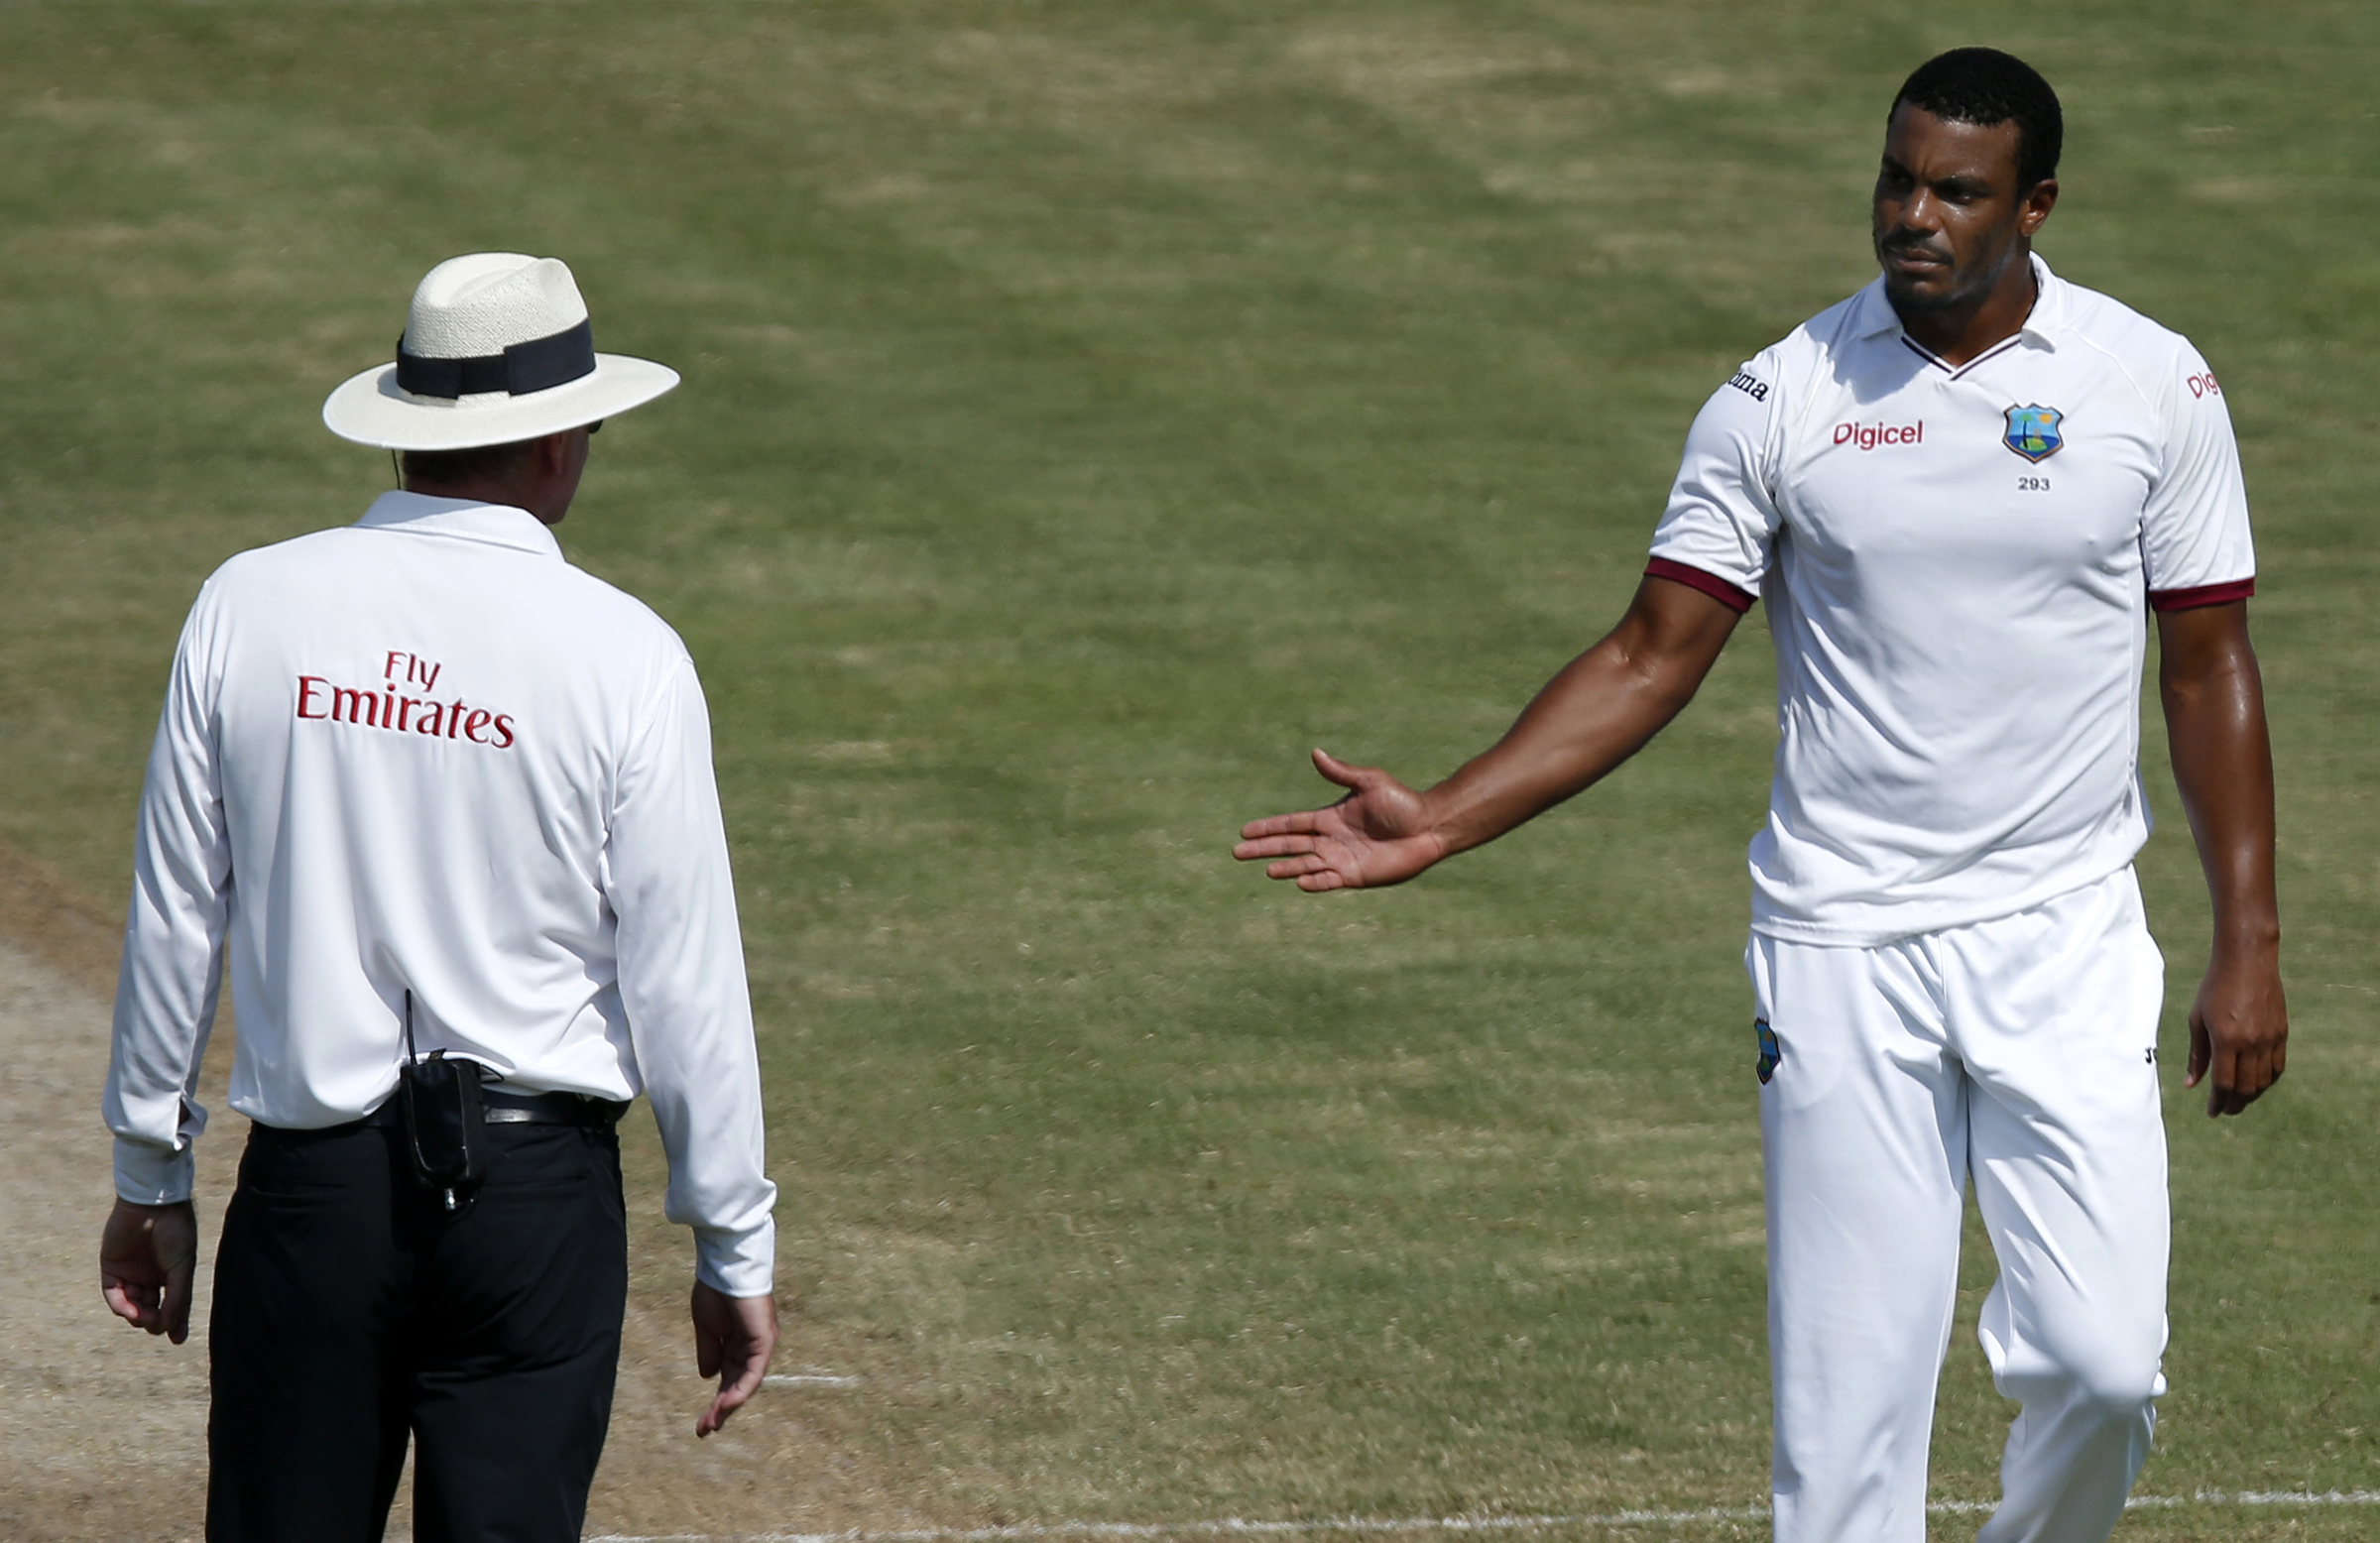 England Must Be Wary Of Wounded West Indies